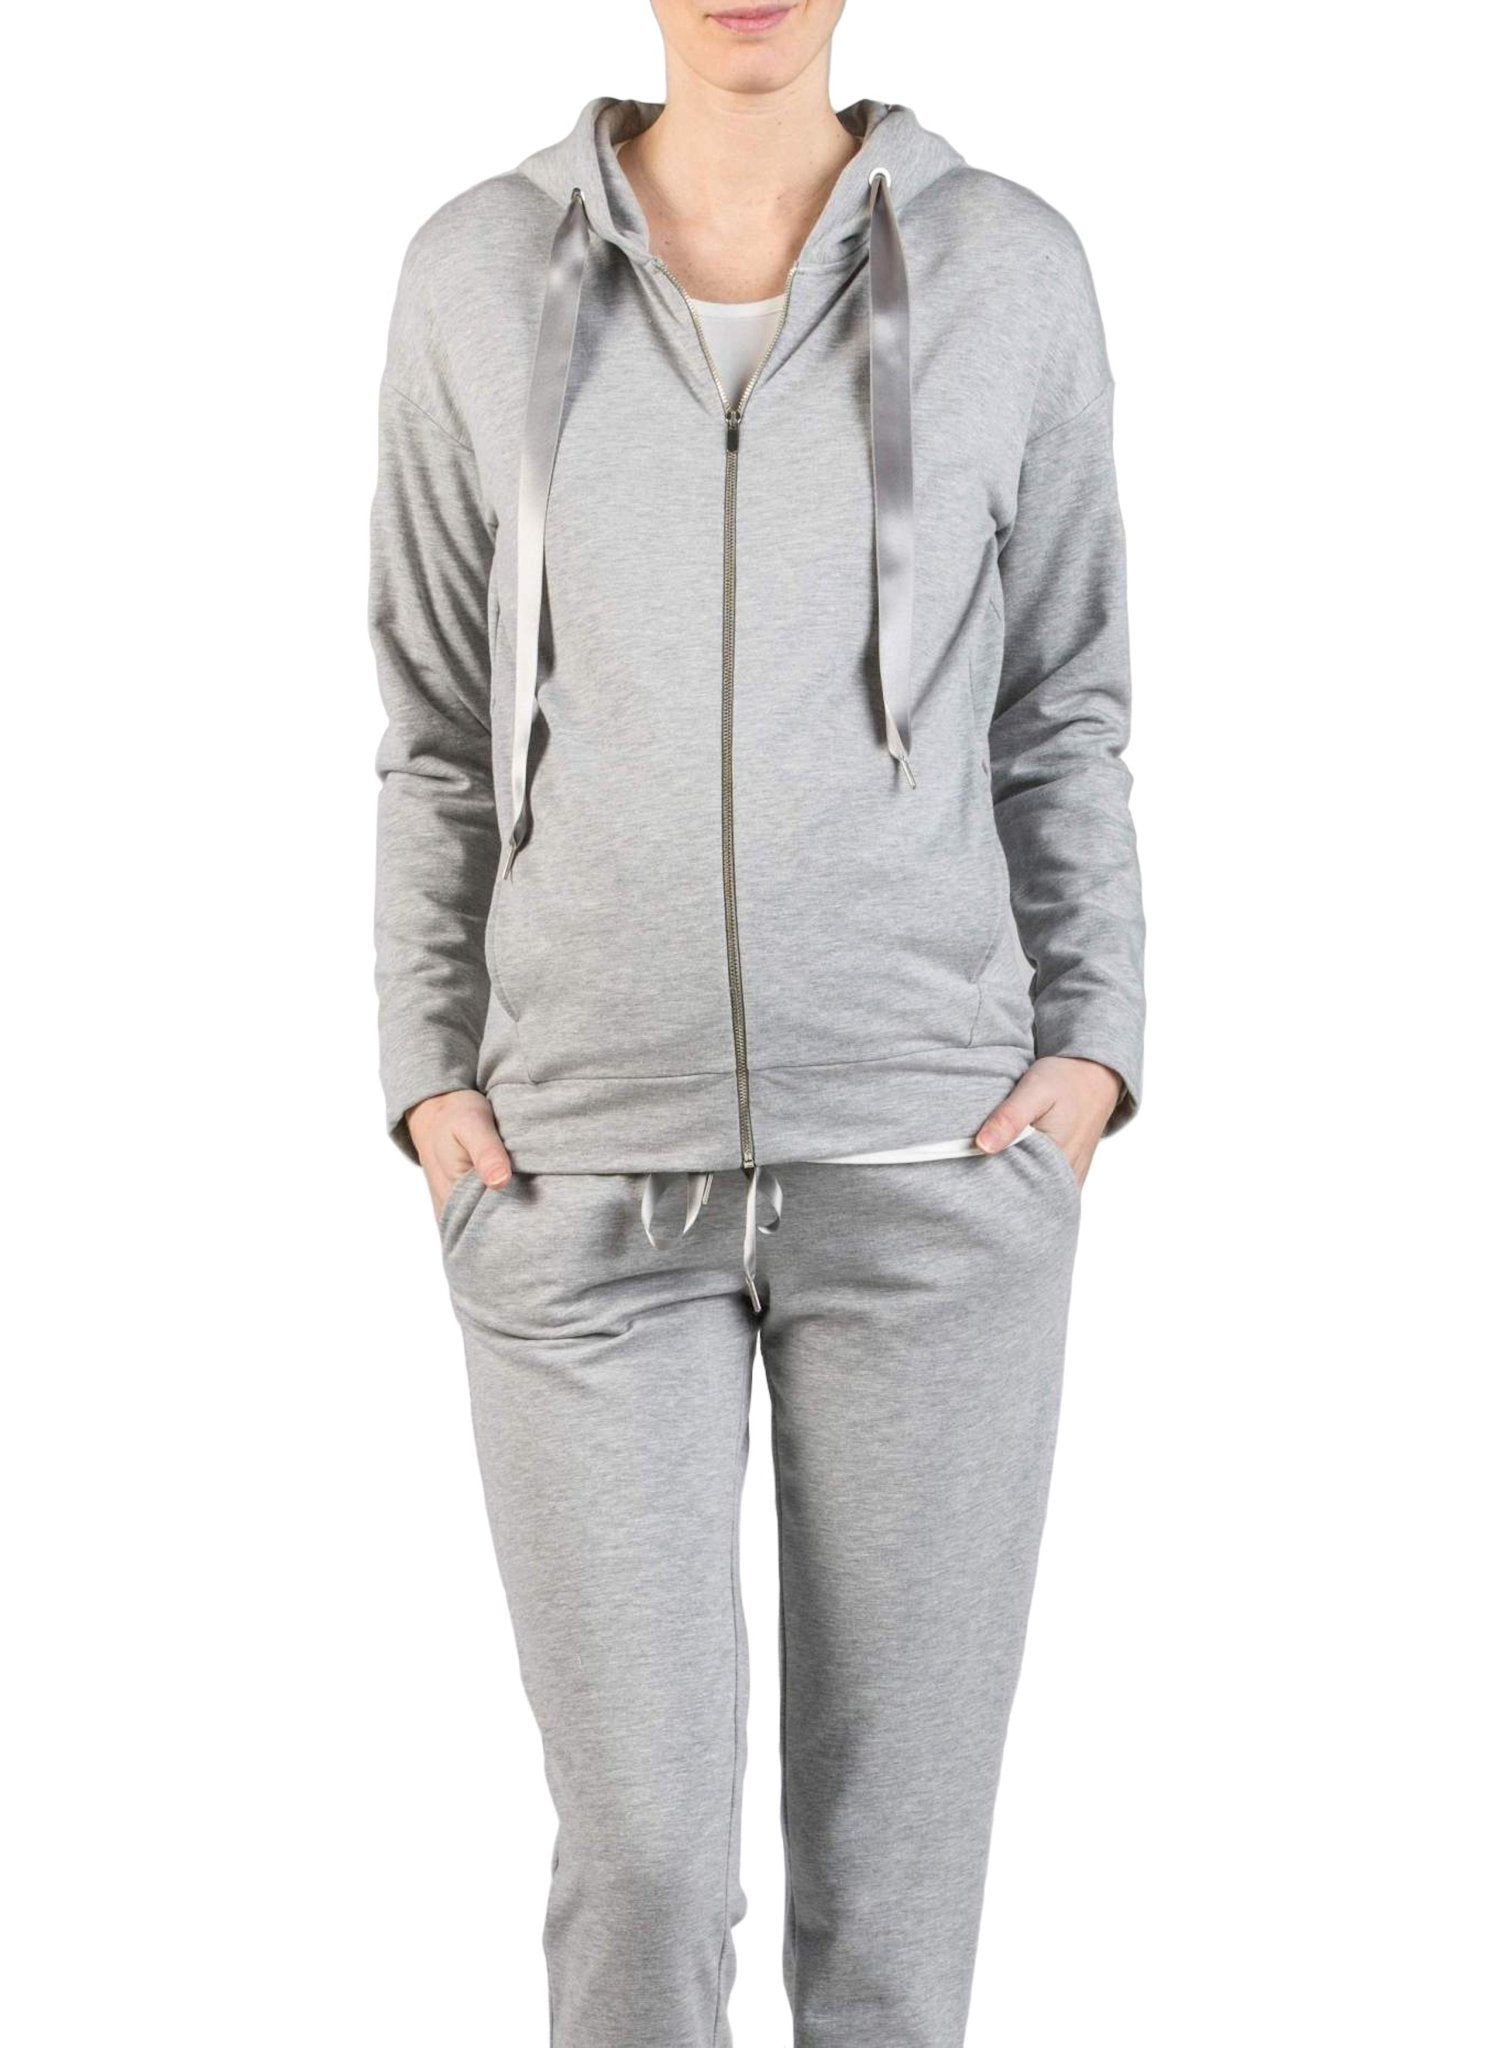 Maternity Tracksuit (2 Piece Set) - Grey - Mums and Bumps